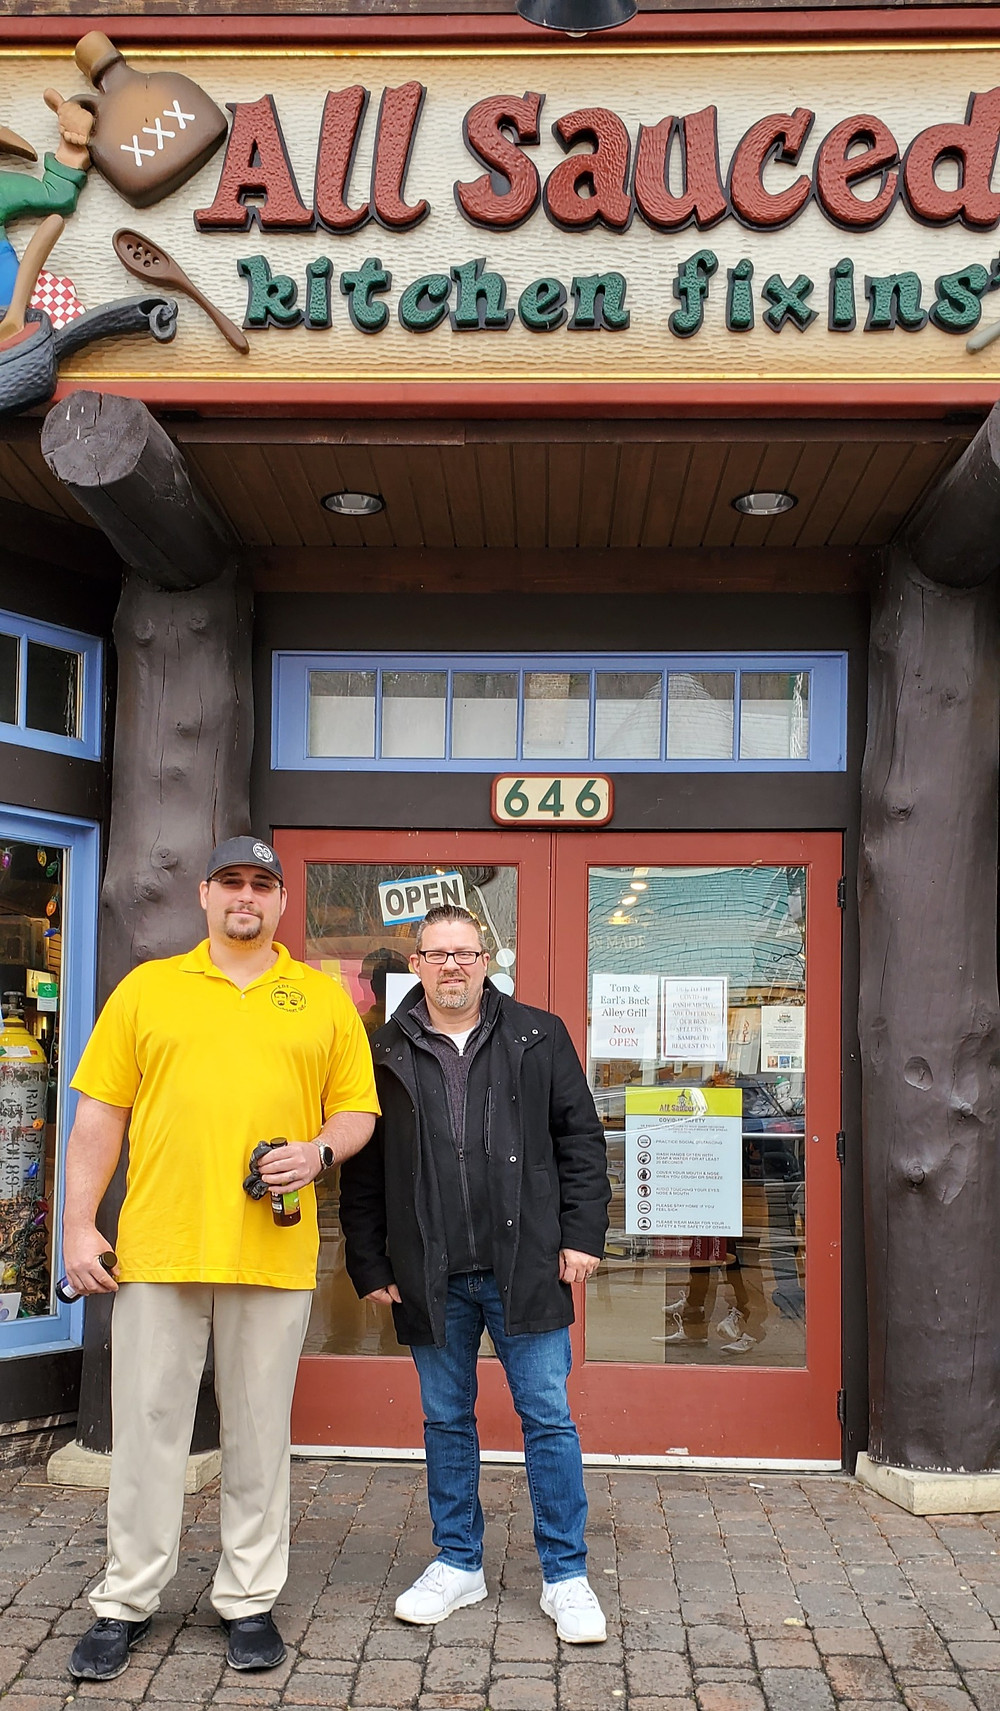 Picture of Eric and Denim in front of All Sauced Up store in Gatlinburg, TN.